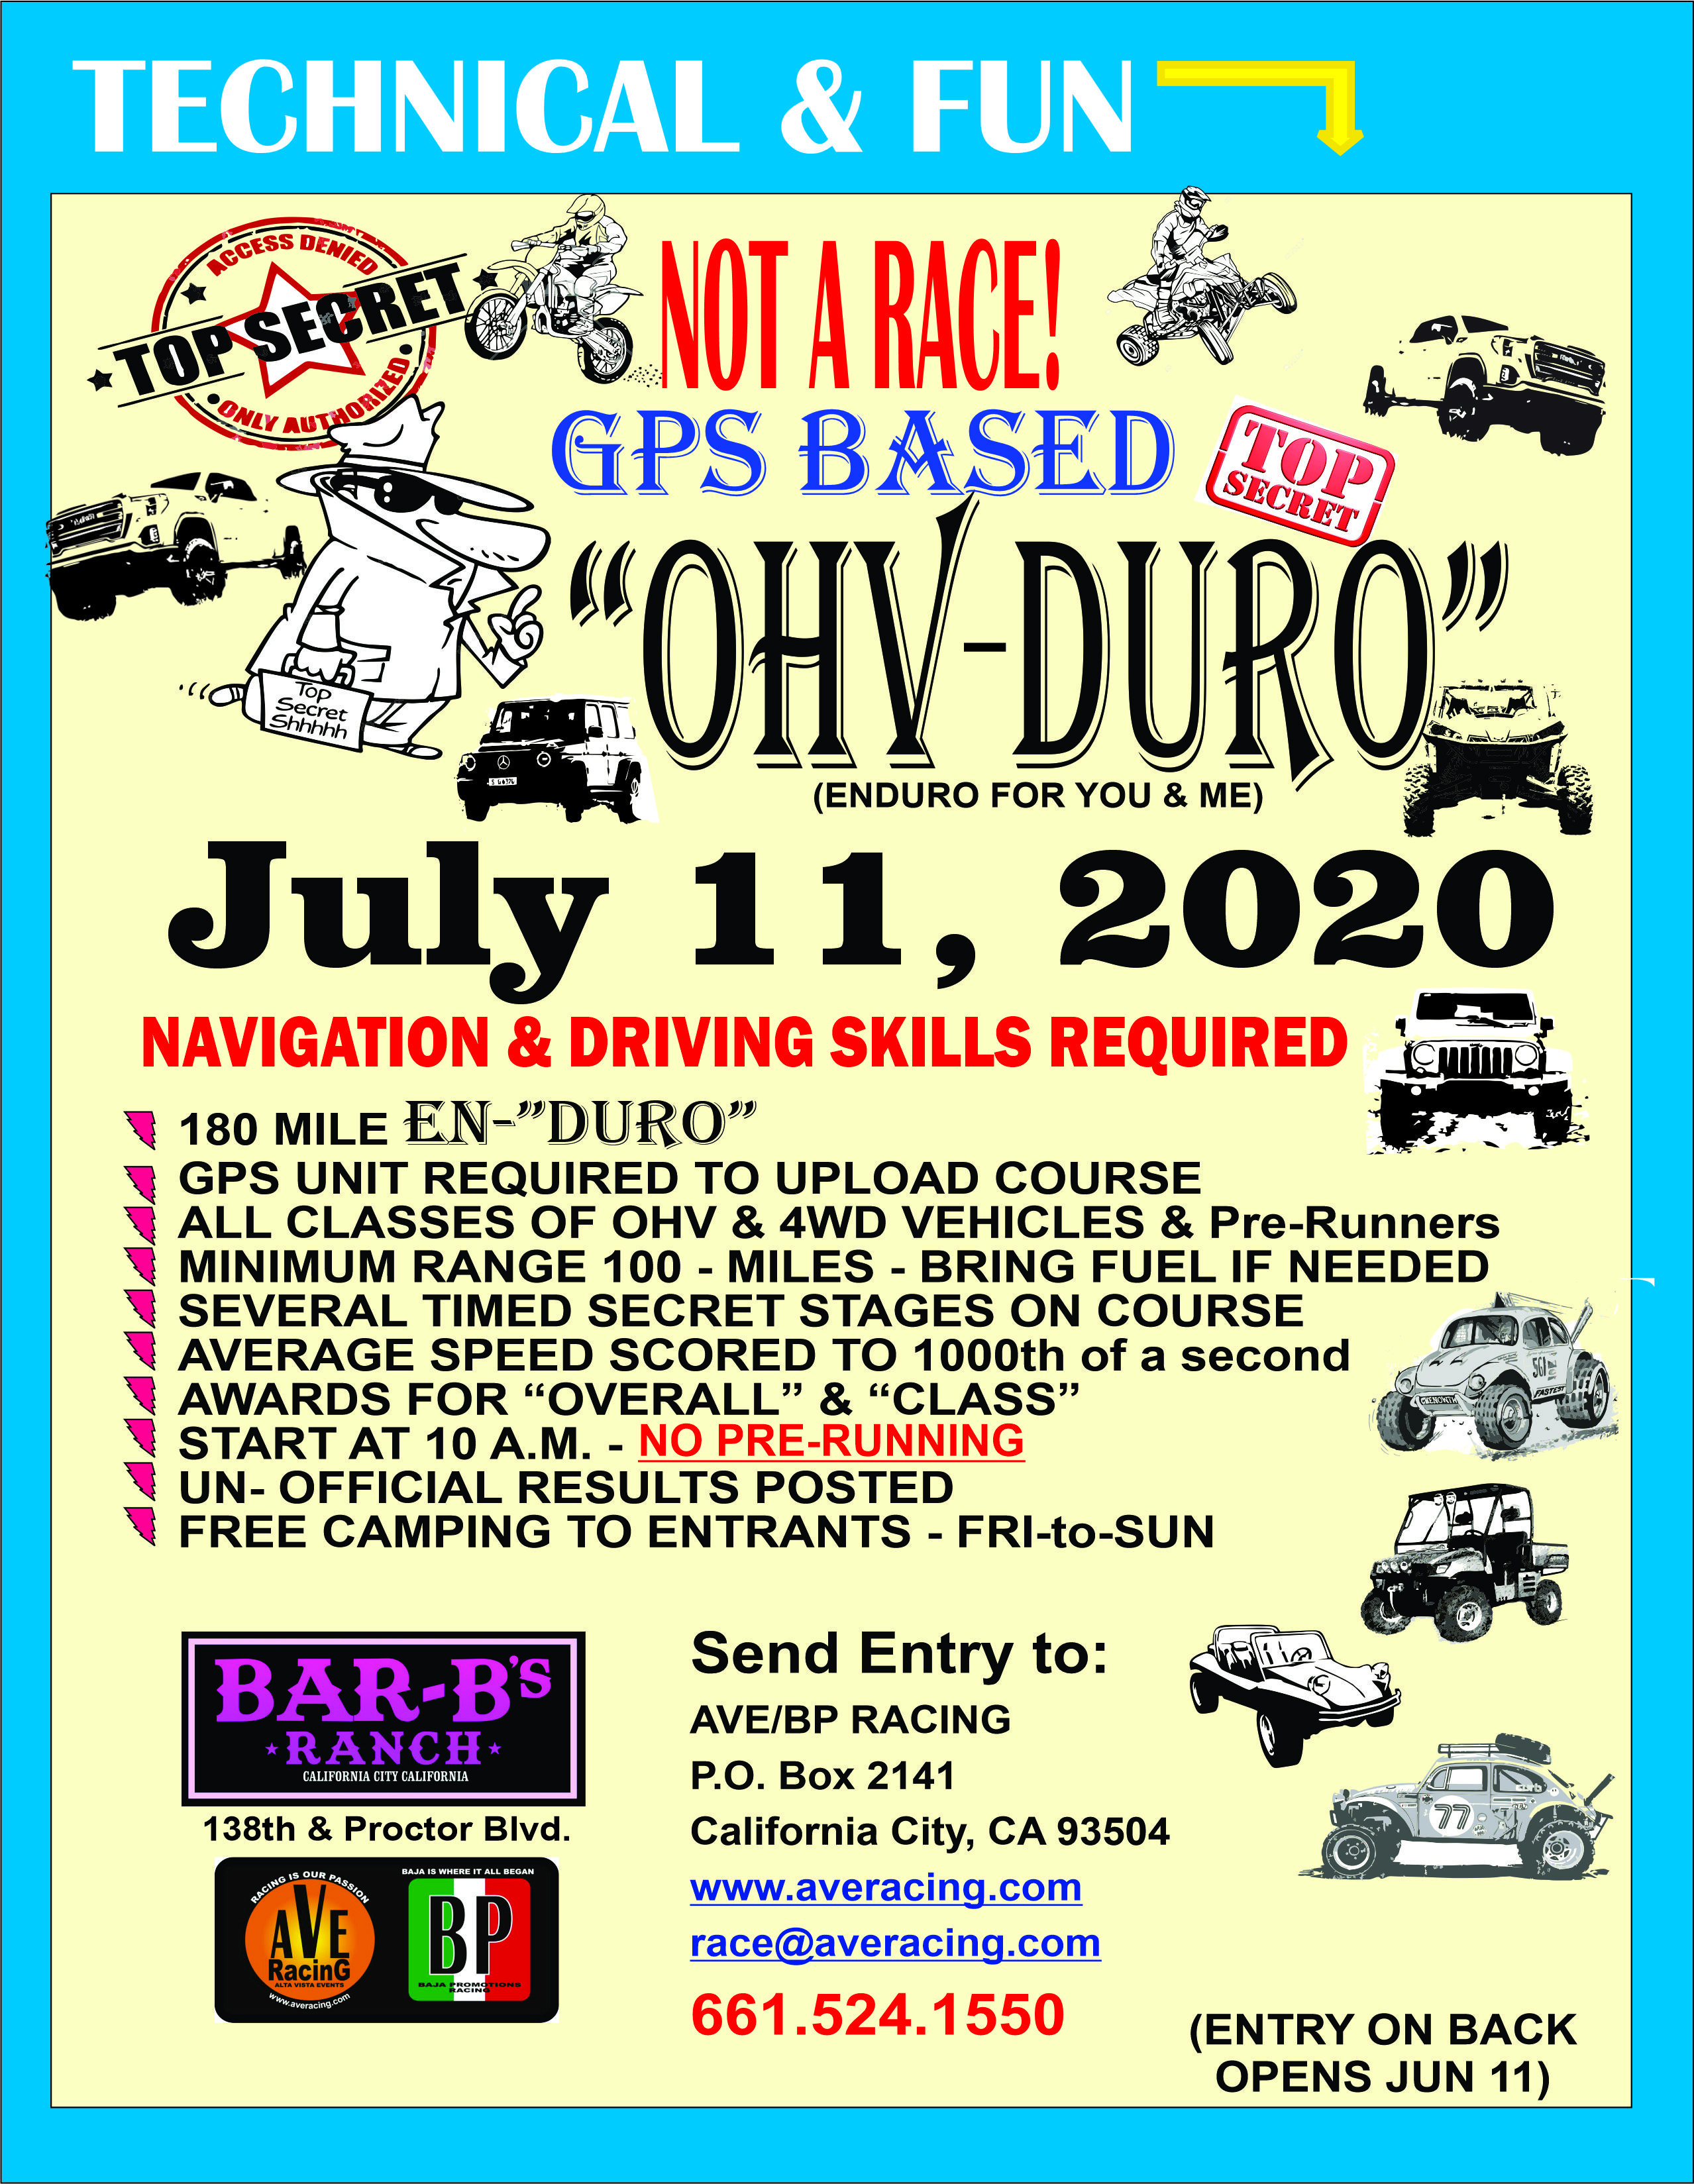 20-OHV-DURO-FINAL-X--May24.jpg